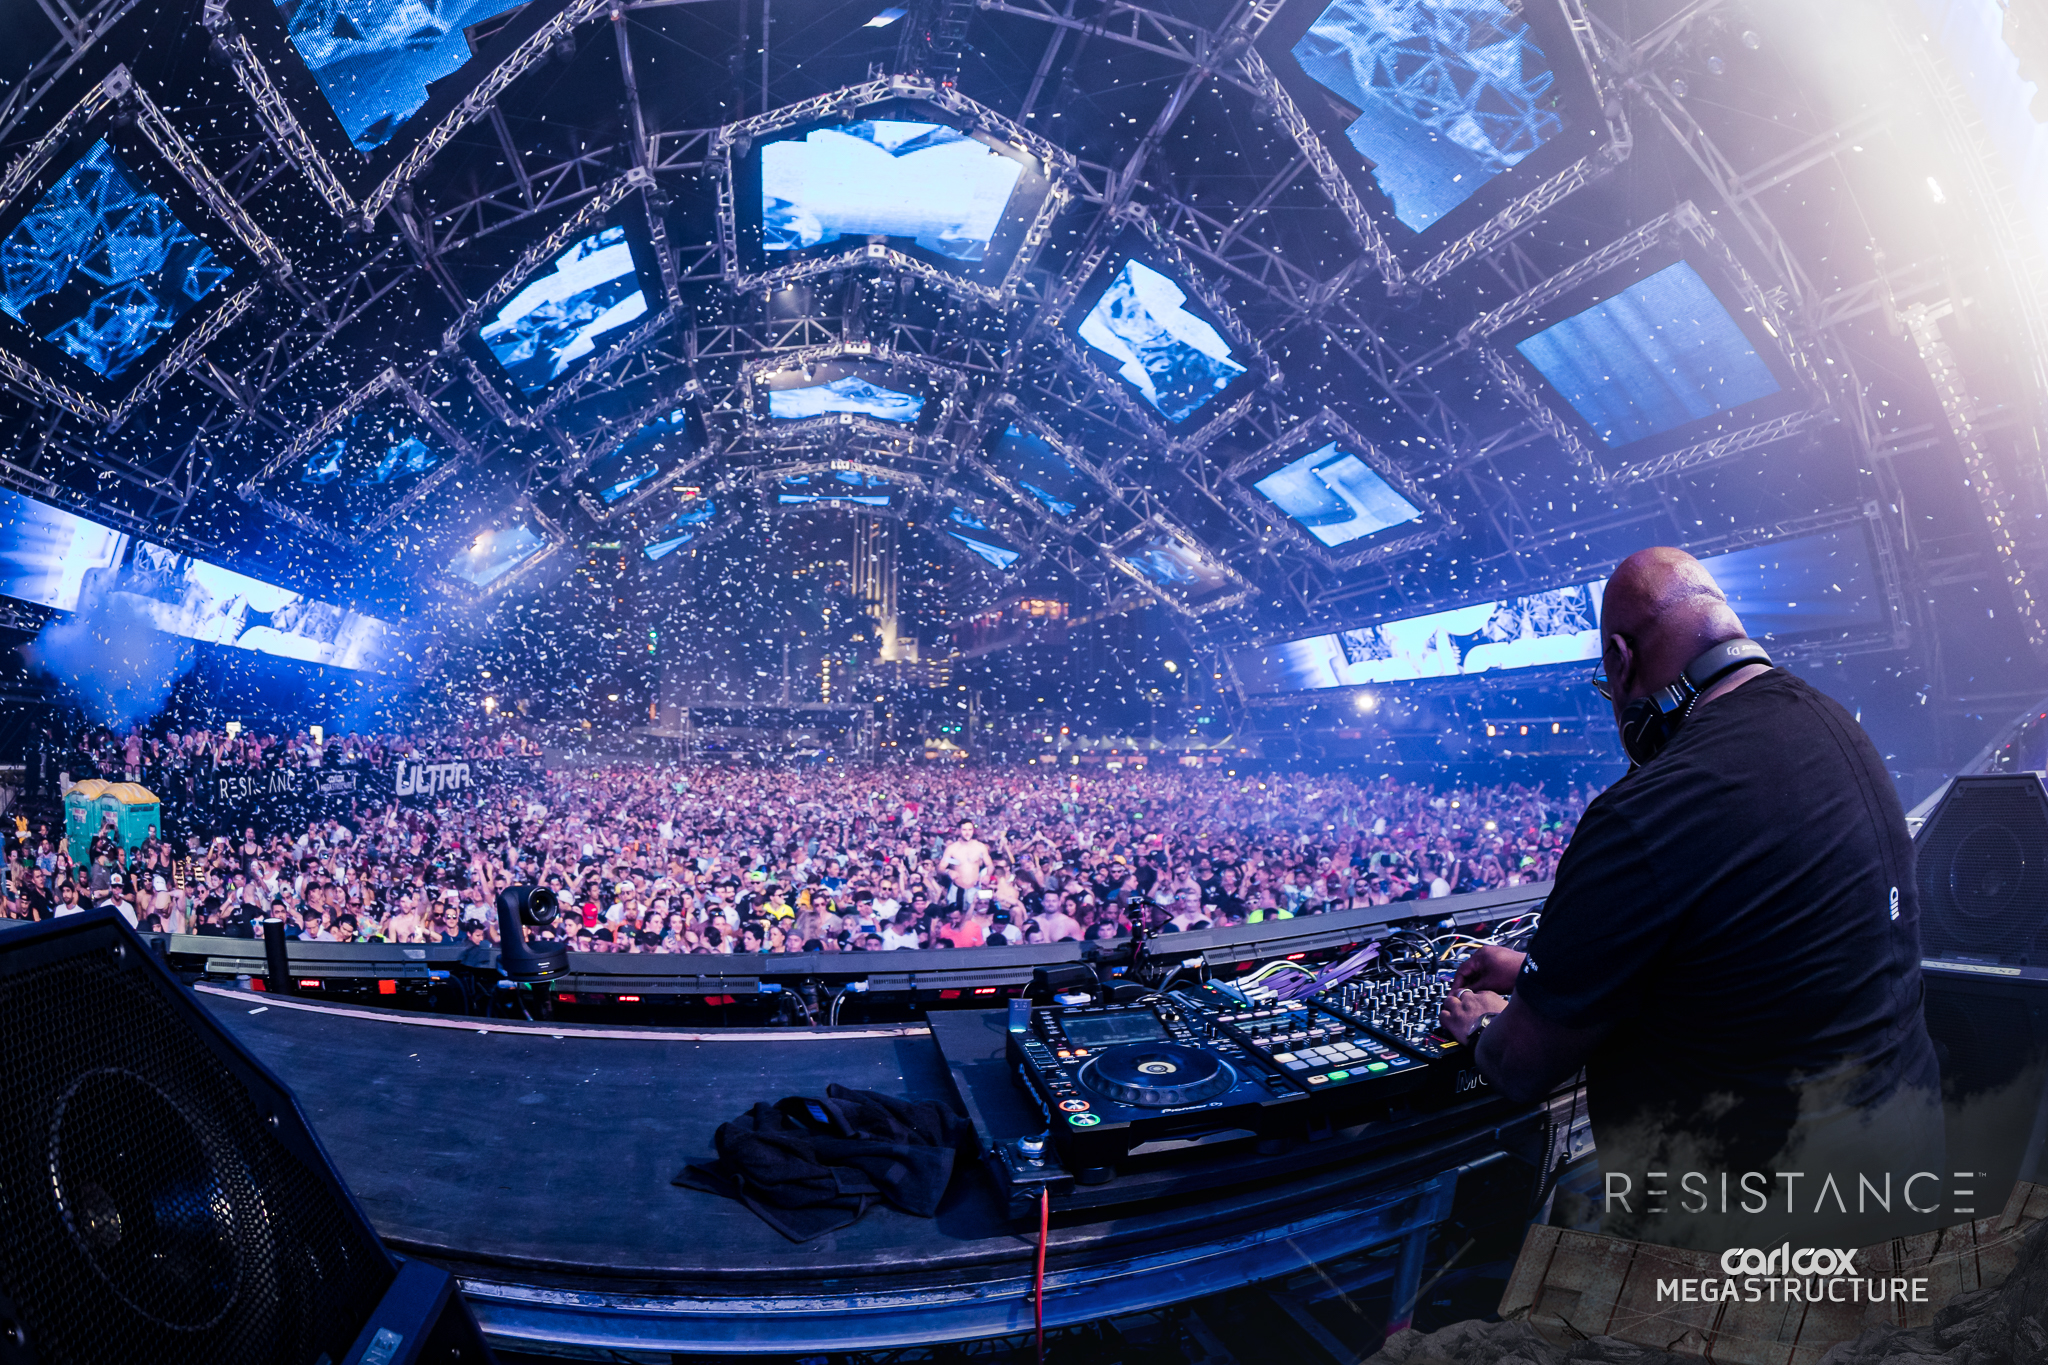 Ultra_2017_aLIVE Coverage - RESISTANCE Carl Cox MegaStructure